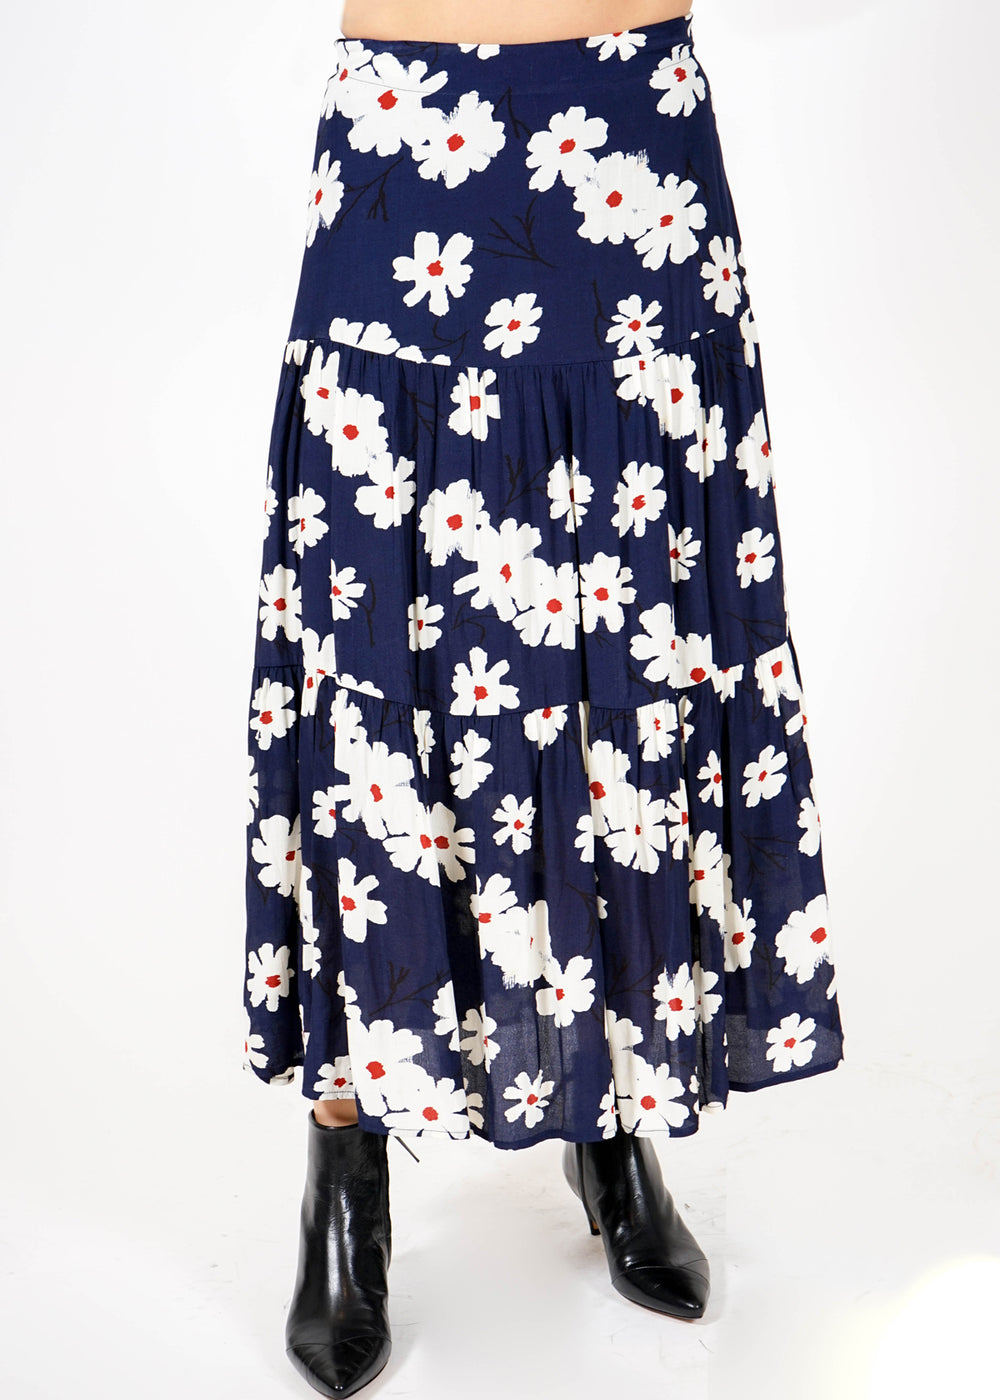 Tiered Skirt - Navy Floral